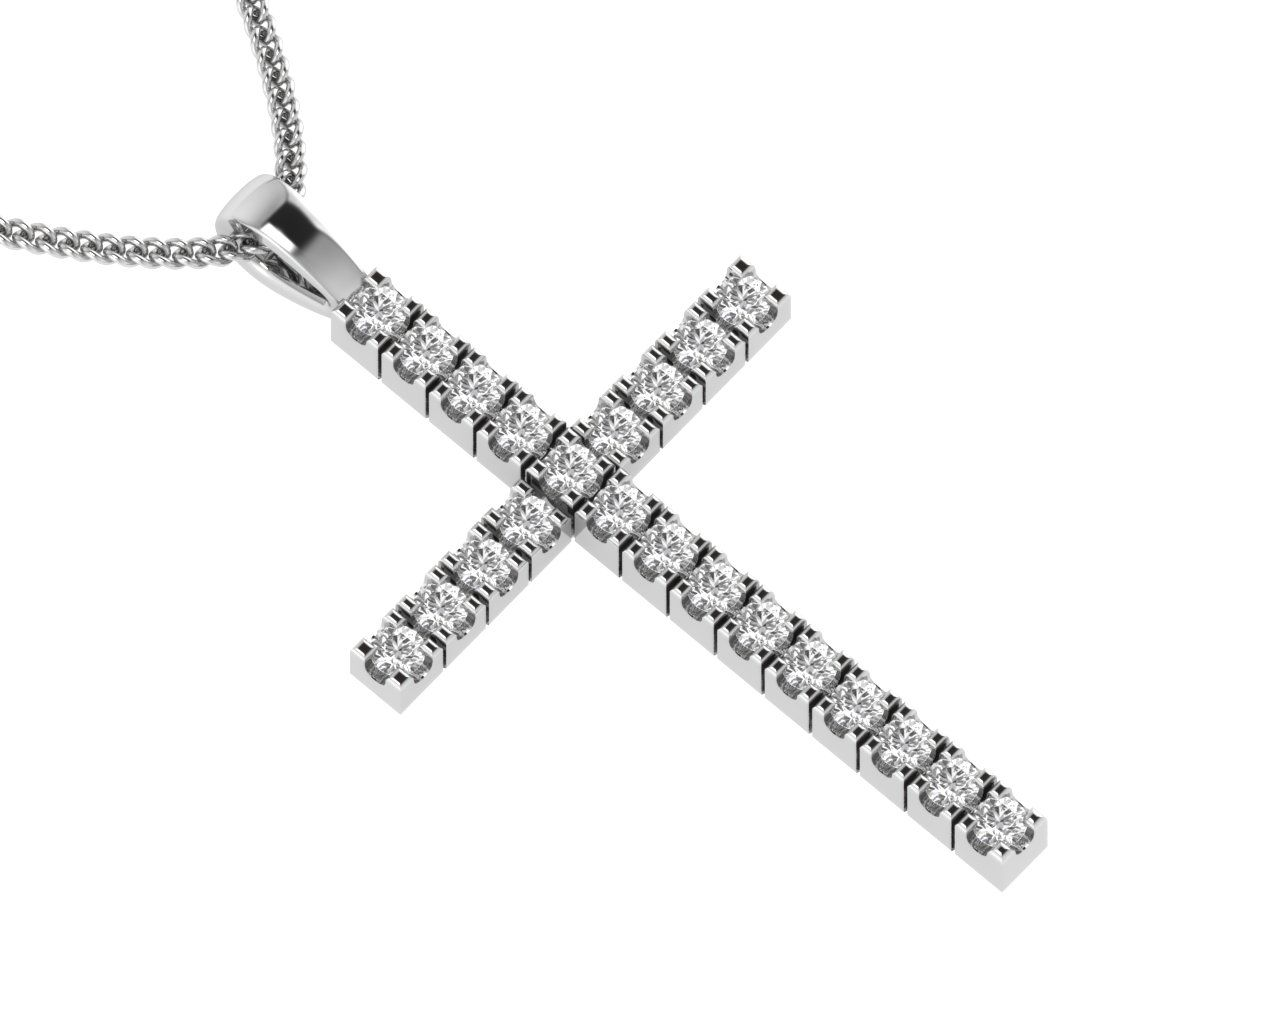 0.20 carat Round Brilliant Cut Diamonds Cross Pendent Available in Gold and Platinum With Diamond Clarity SI, VS and VVS at http://finediamondsrus.com/index.php?route=product/product&product_id=433 #diamond #Pendent #jewelry #giftforher #love #worship #crosspendent #holycross #gold #platinum #FineDiamondsRus #HattonGarden #London